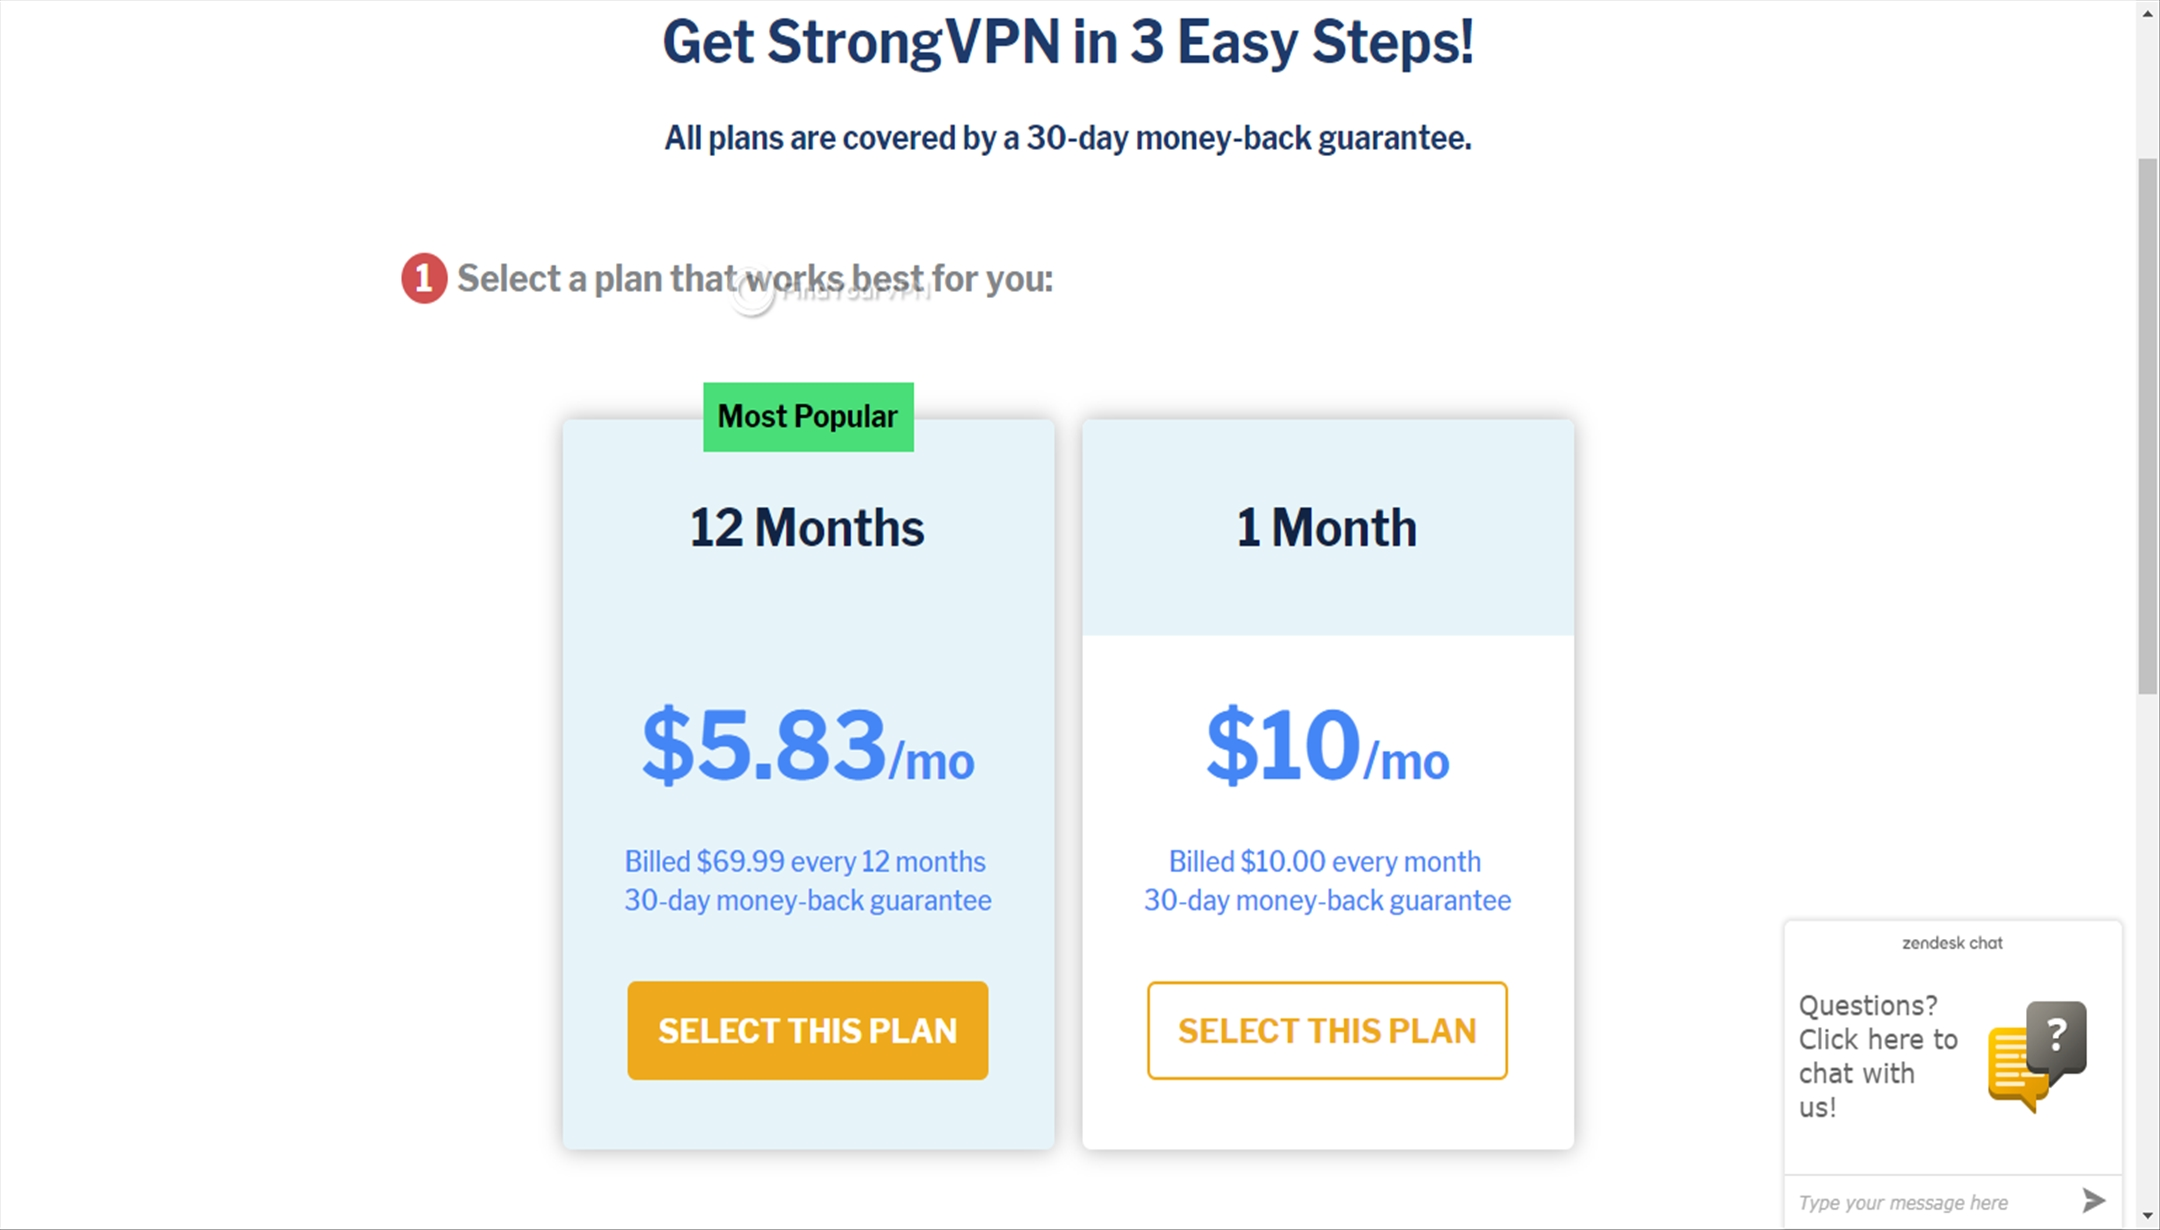 StrongVPN offers two subscriptions